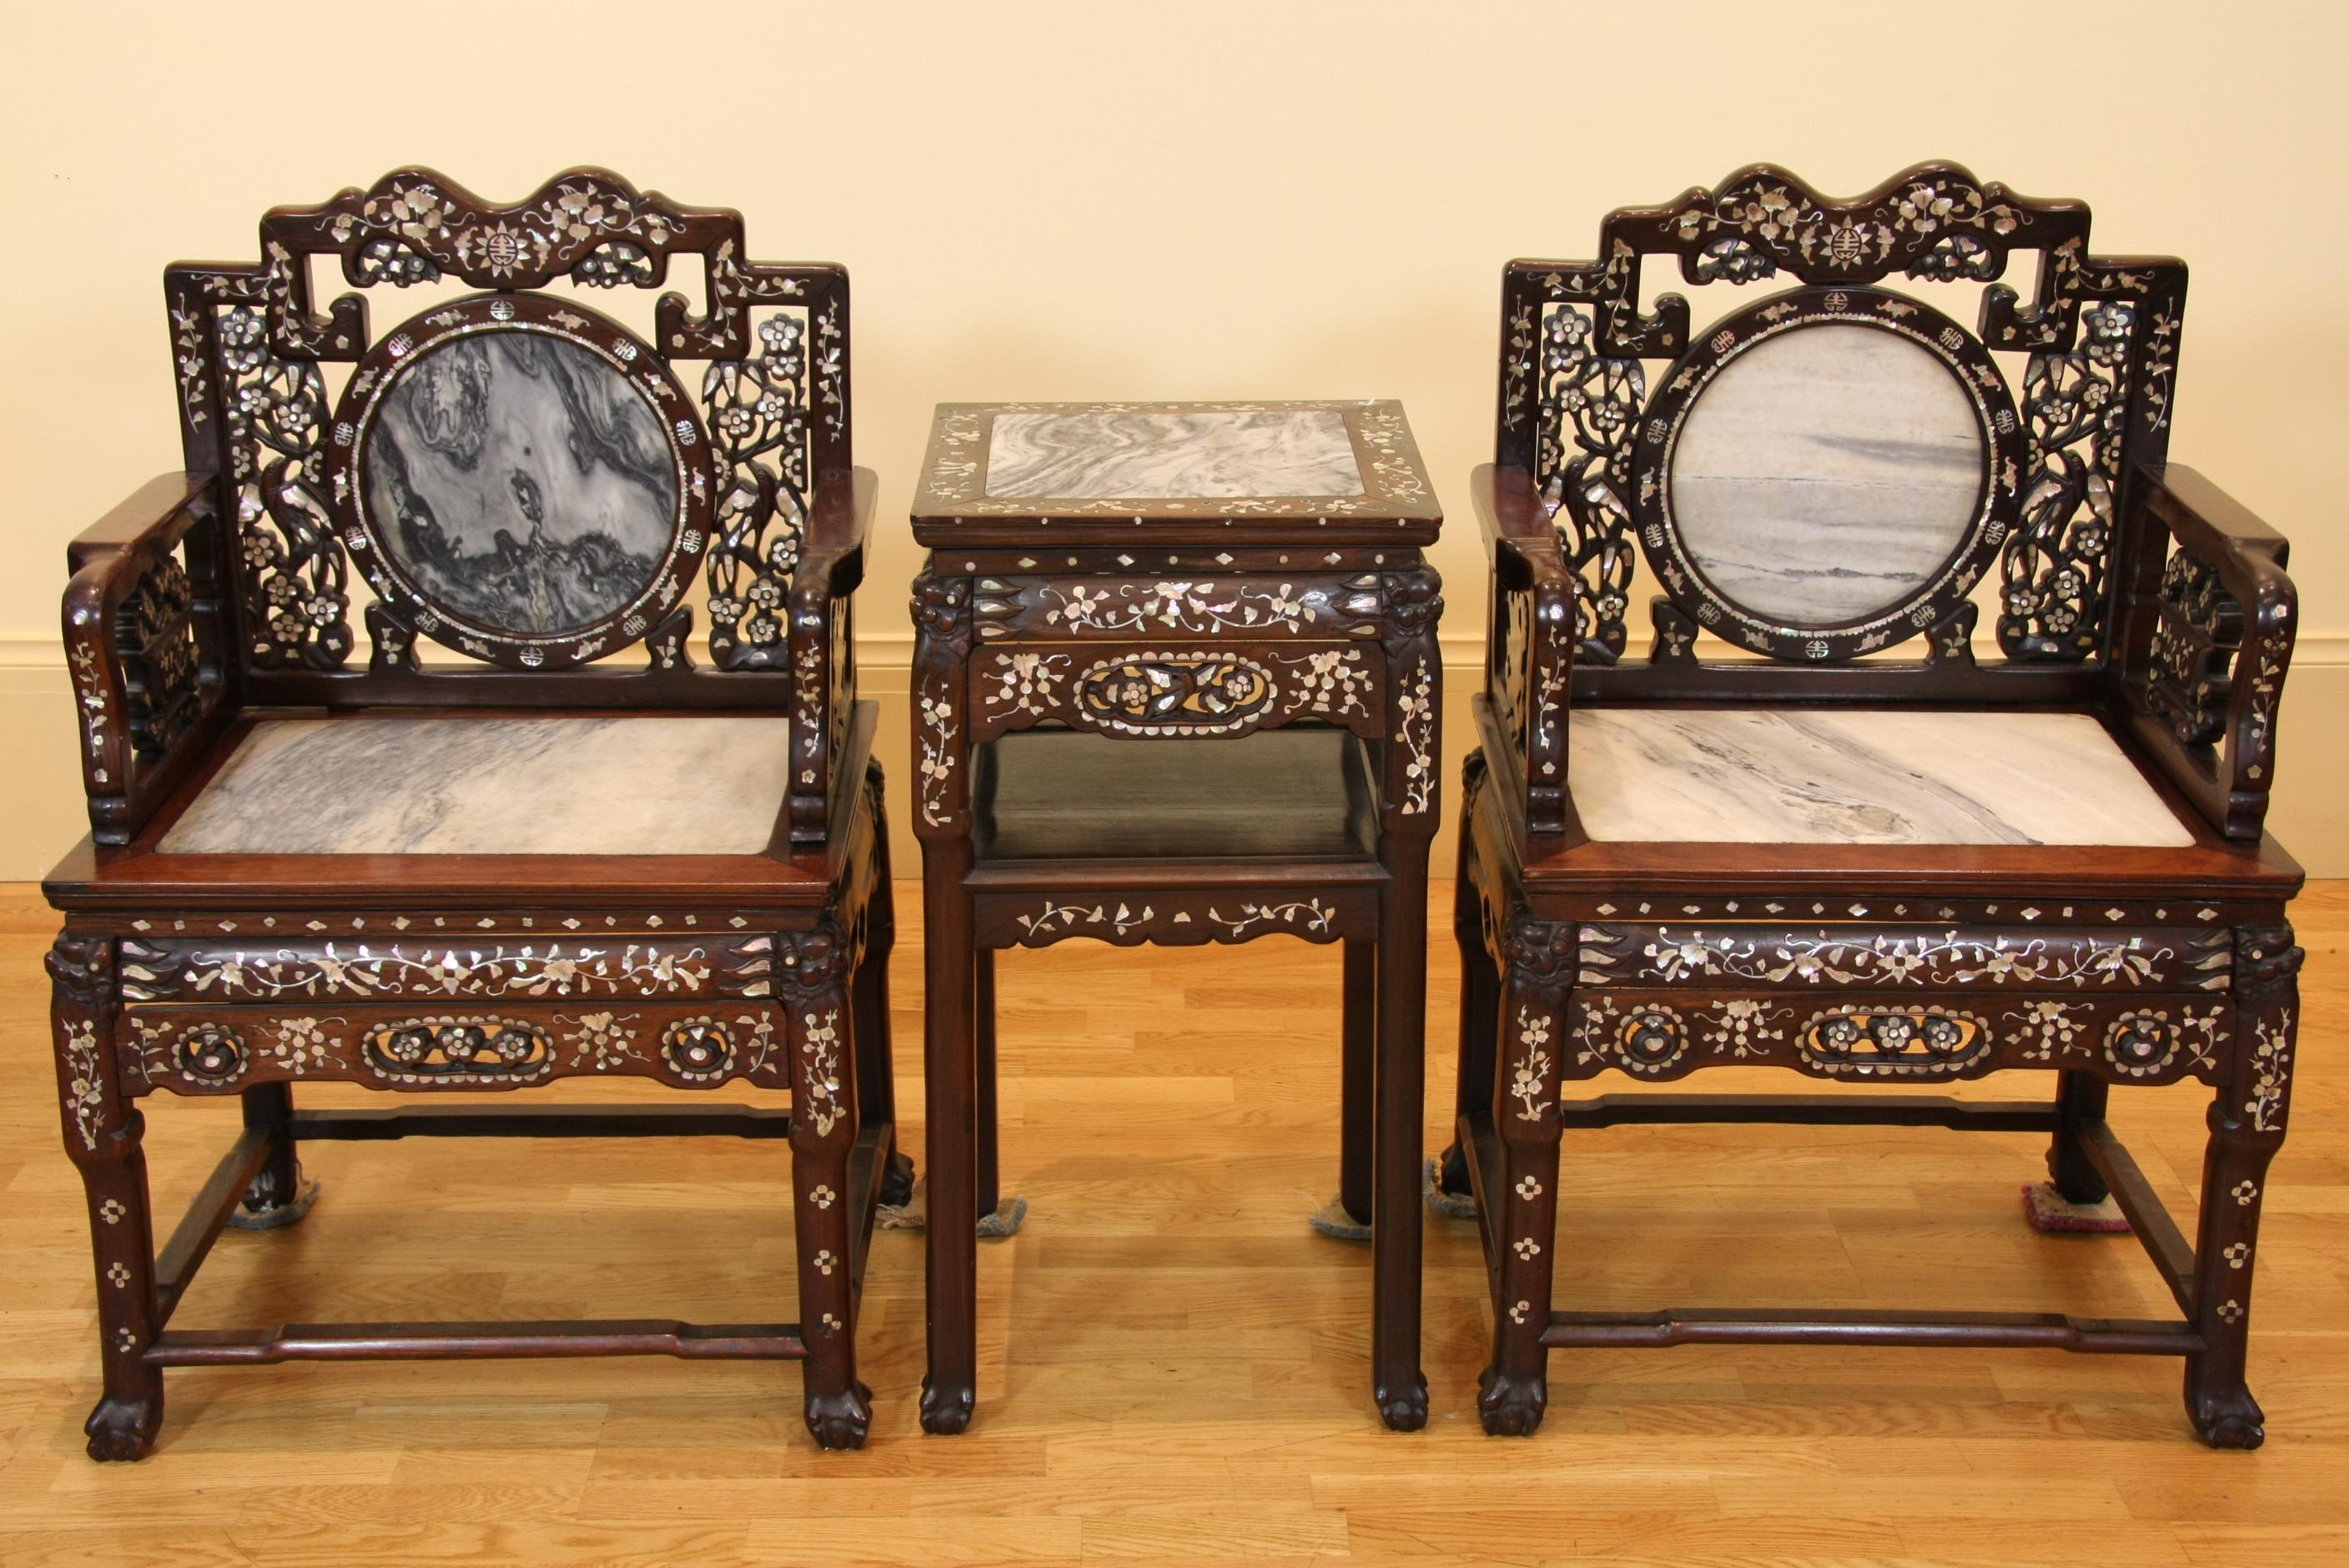 Pair Of Rosewood Chairs From The Qing Dynasty 1644 1912